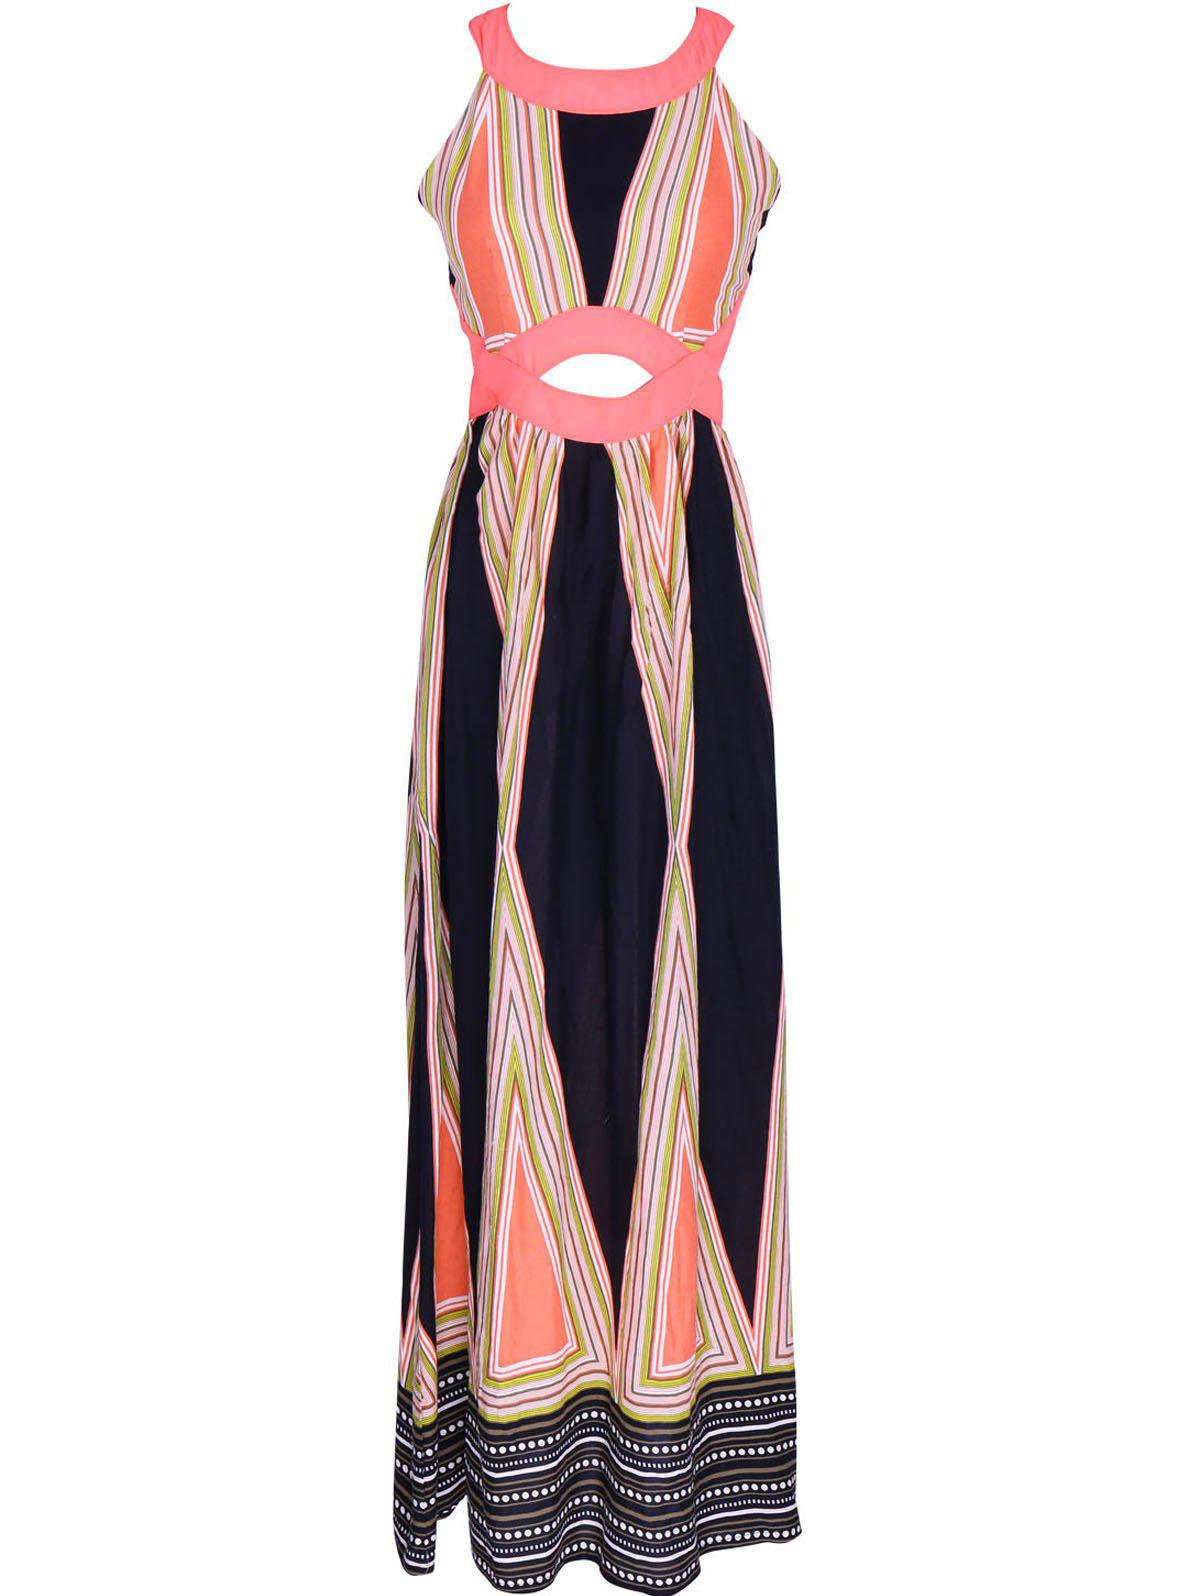 Attractive Women's Hollow Out Printed Maxi Dress - BLACK/PINK XL